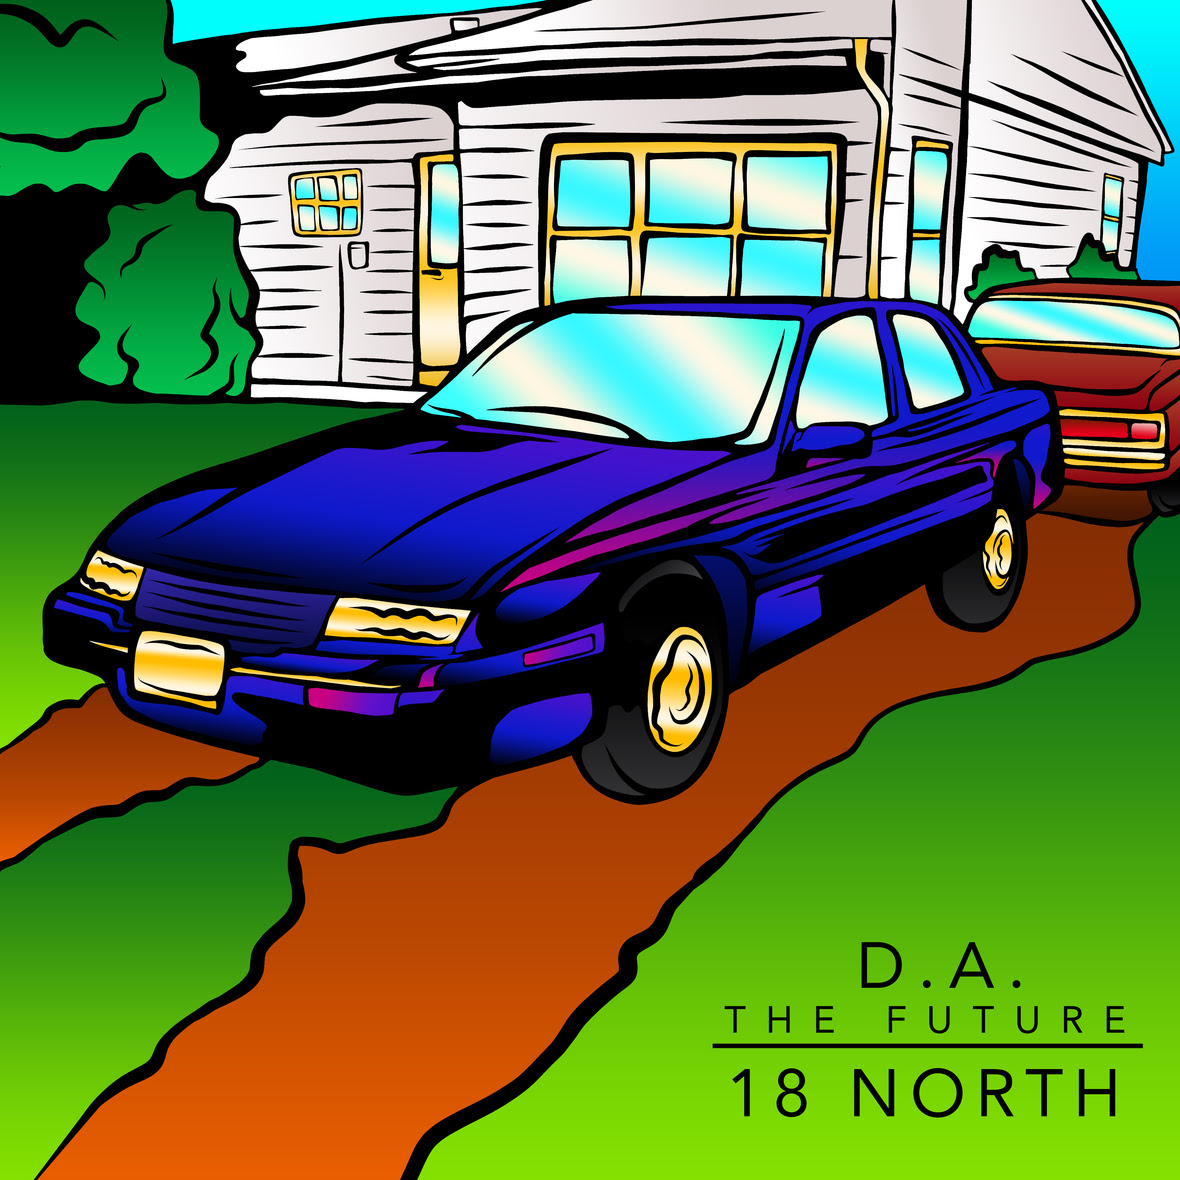 D.A. The Future - 18 North